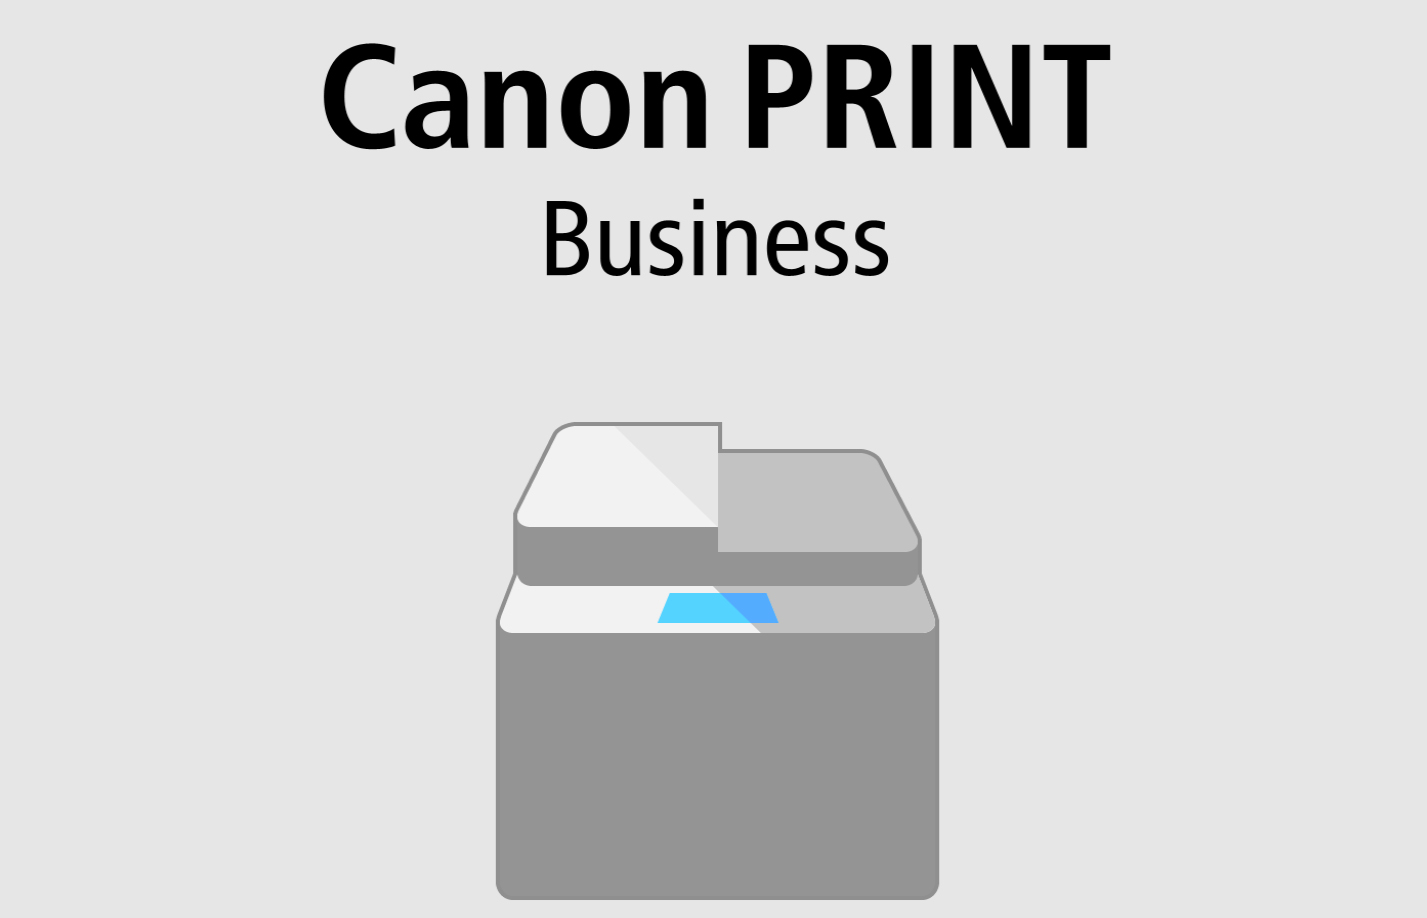 Canon PRINT Business App for iPhone and iPad